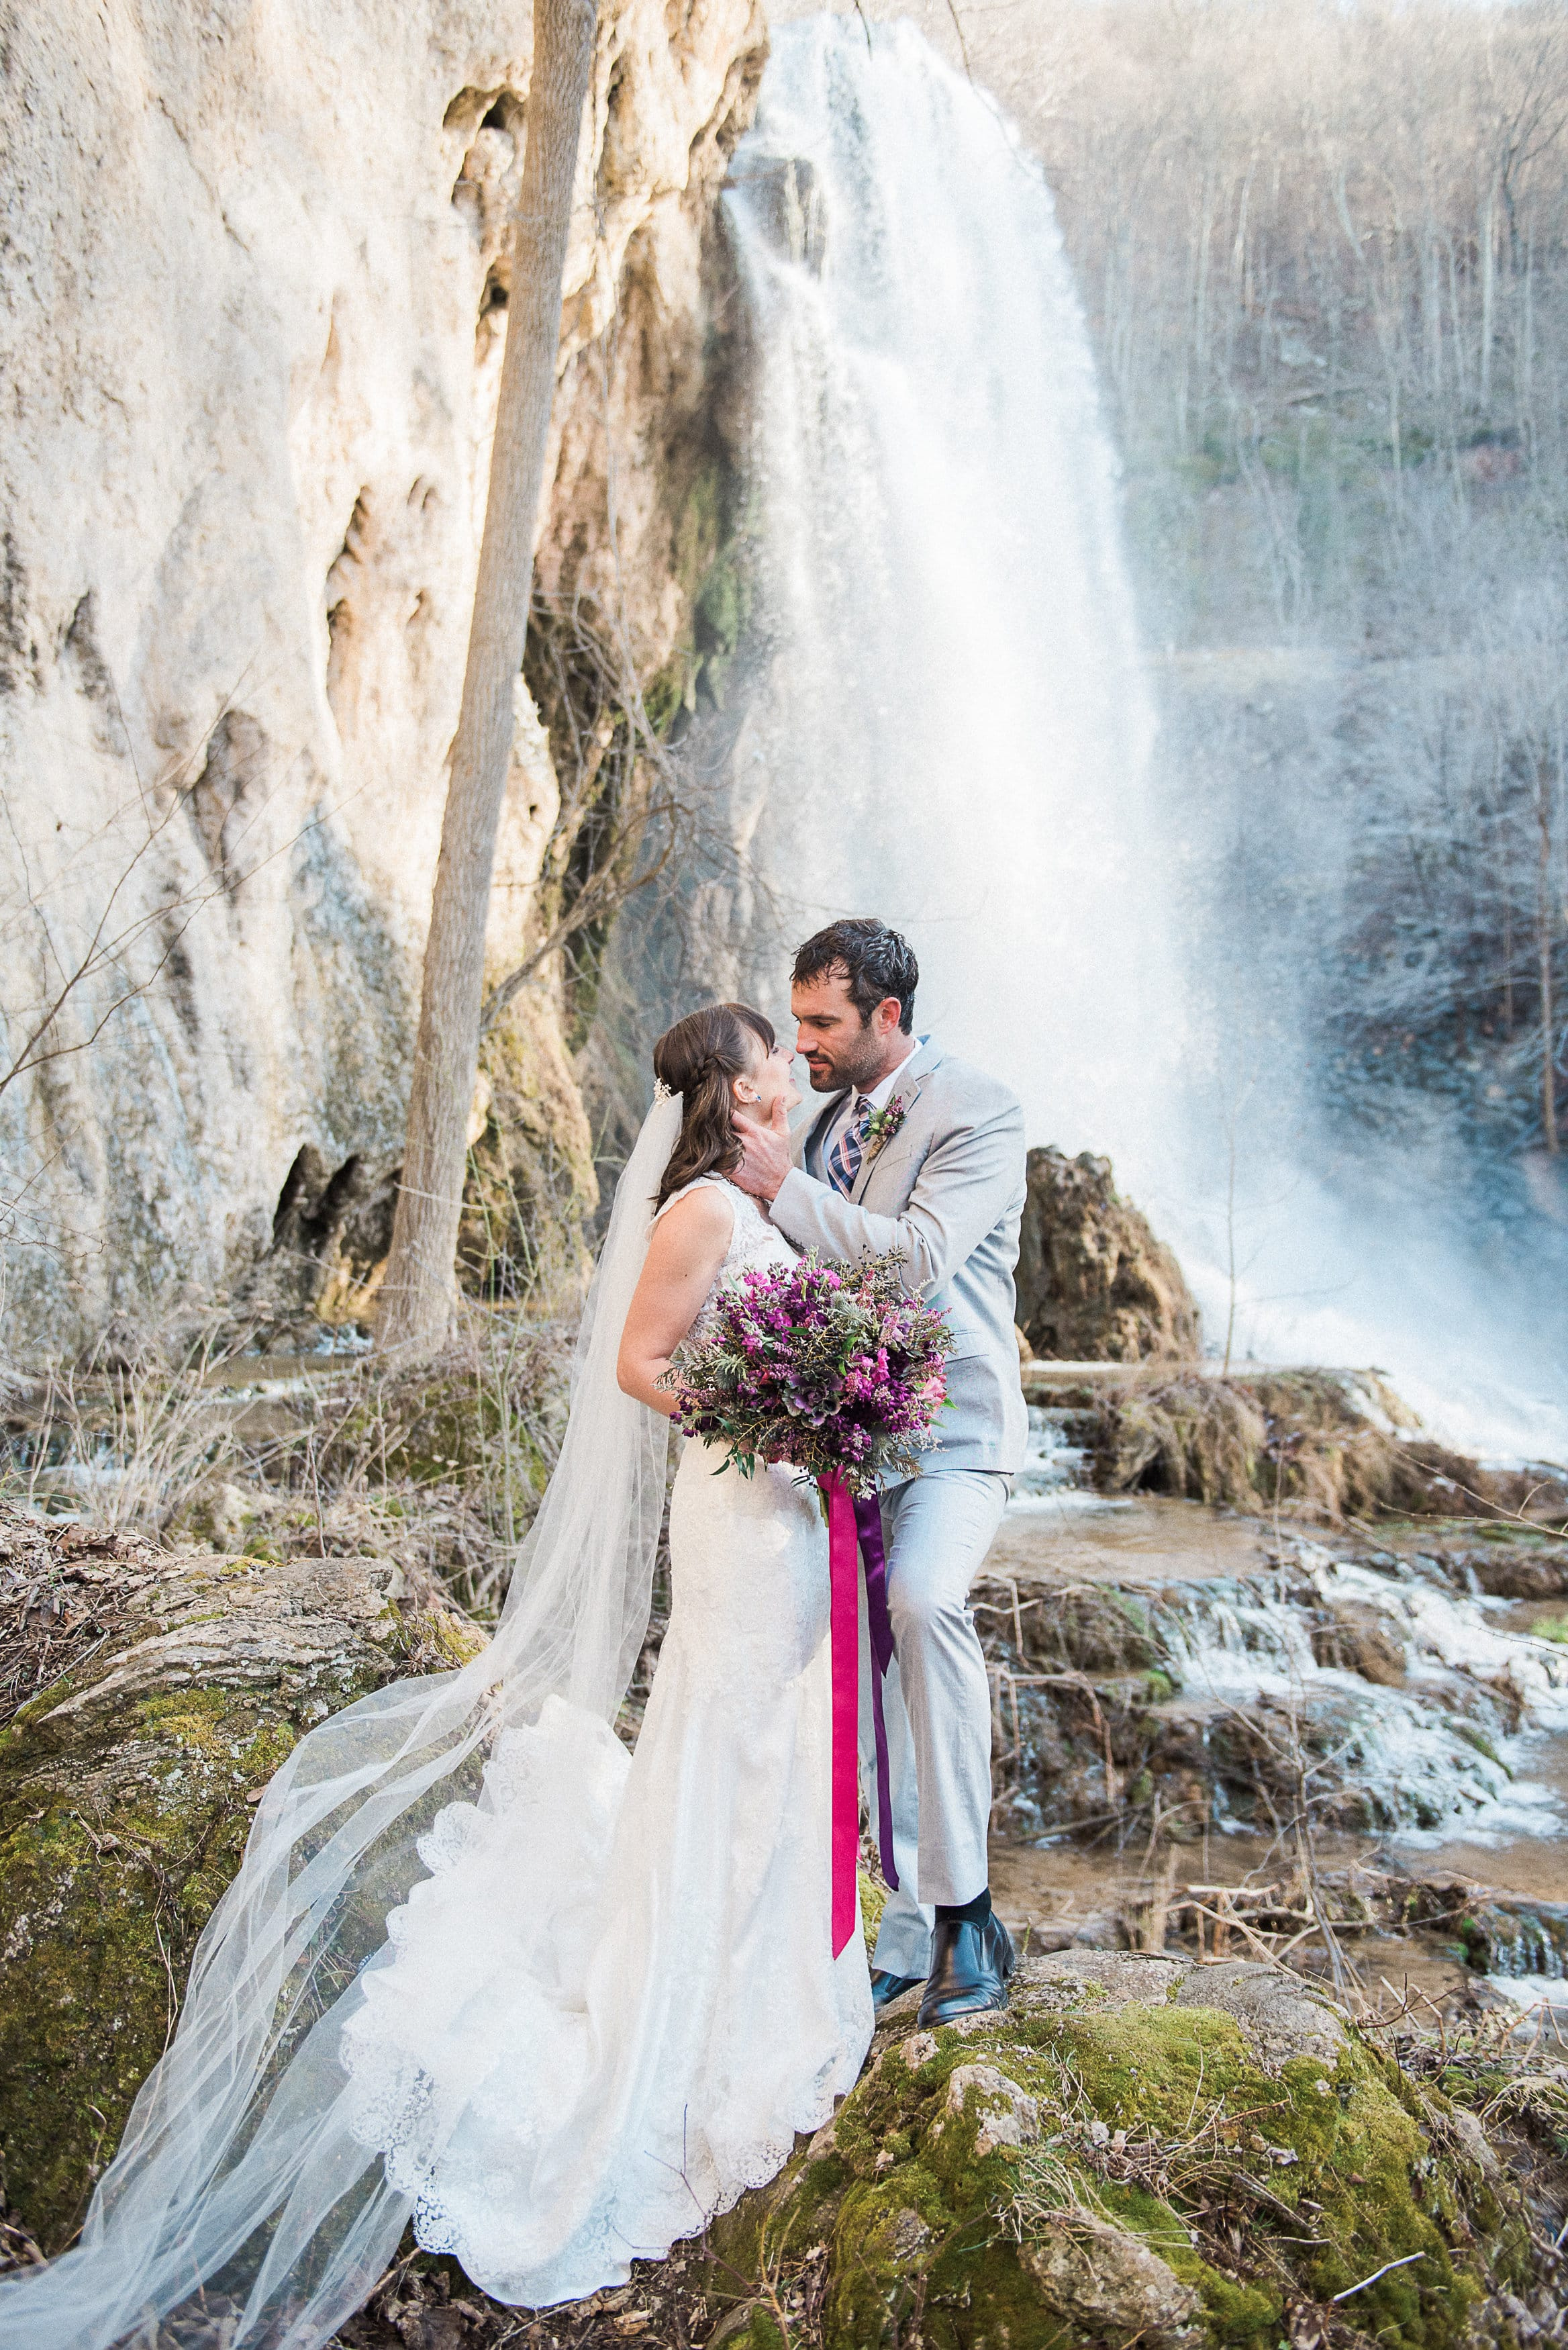 Lace Gown Melanie with Jewel Tones and Waterfall - Maggie Sottero's Melanie gown styled with a jewel-tone wedding palette and a waterfall wedding venue.